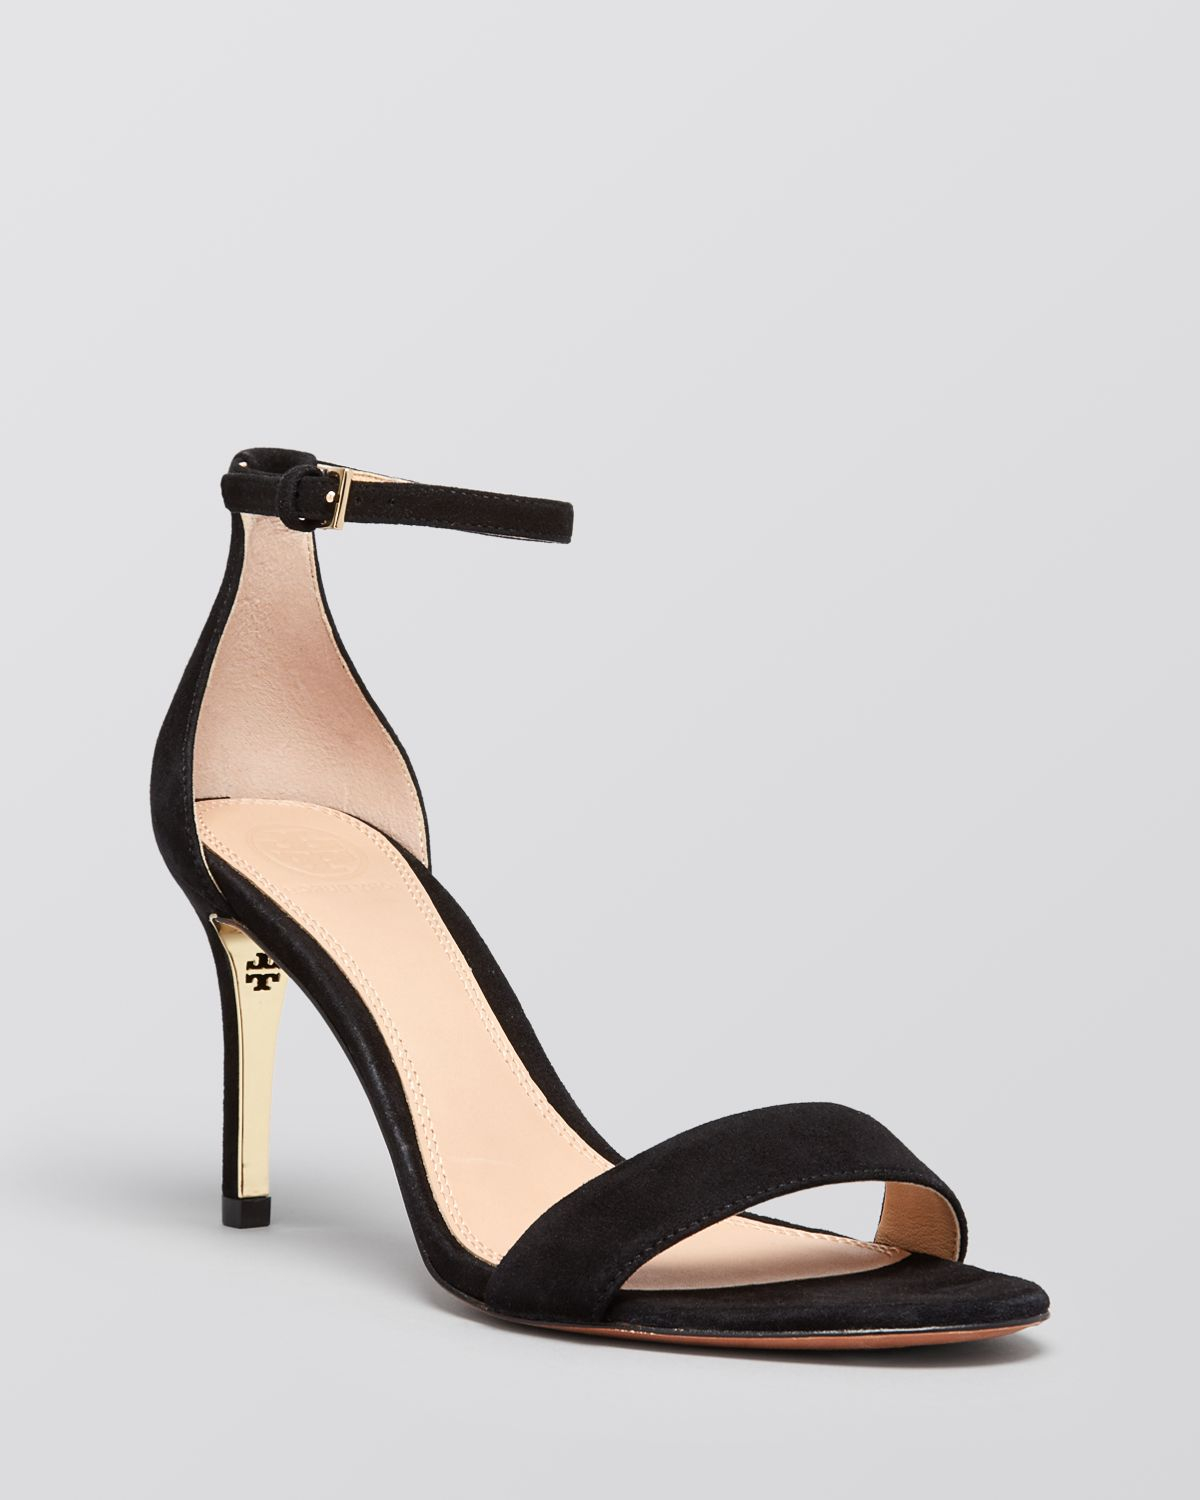 b069e5d05 Tory Burch Ankle Strap Sandals - Keri High Heel in Black - Lyst